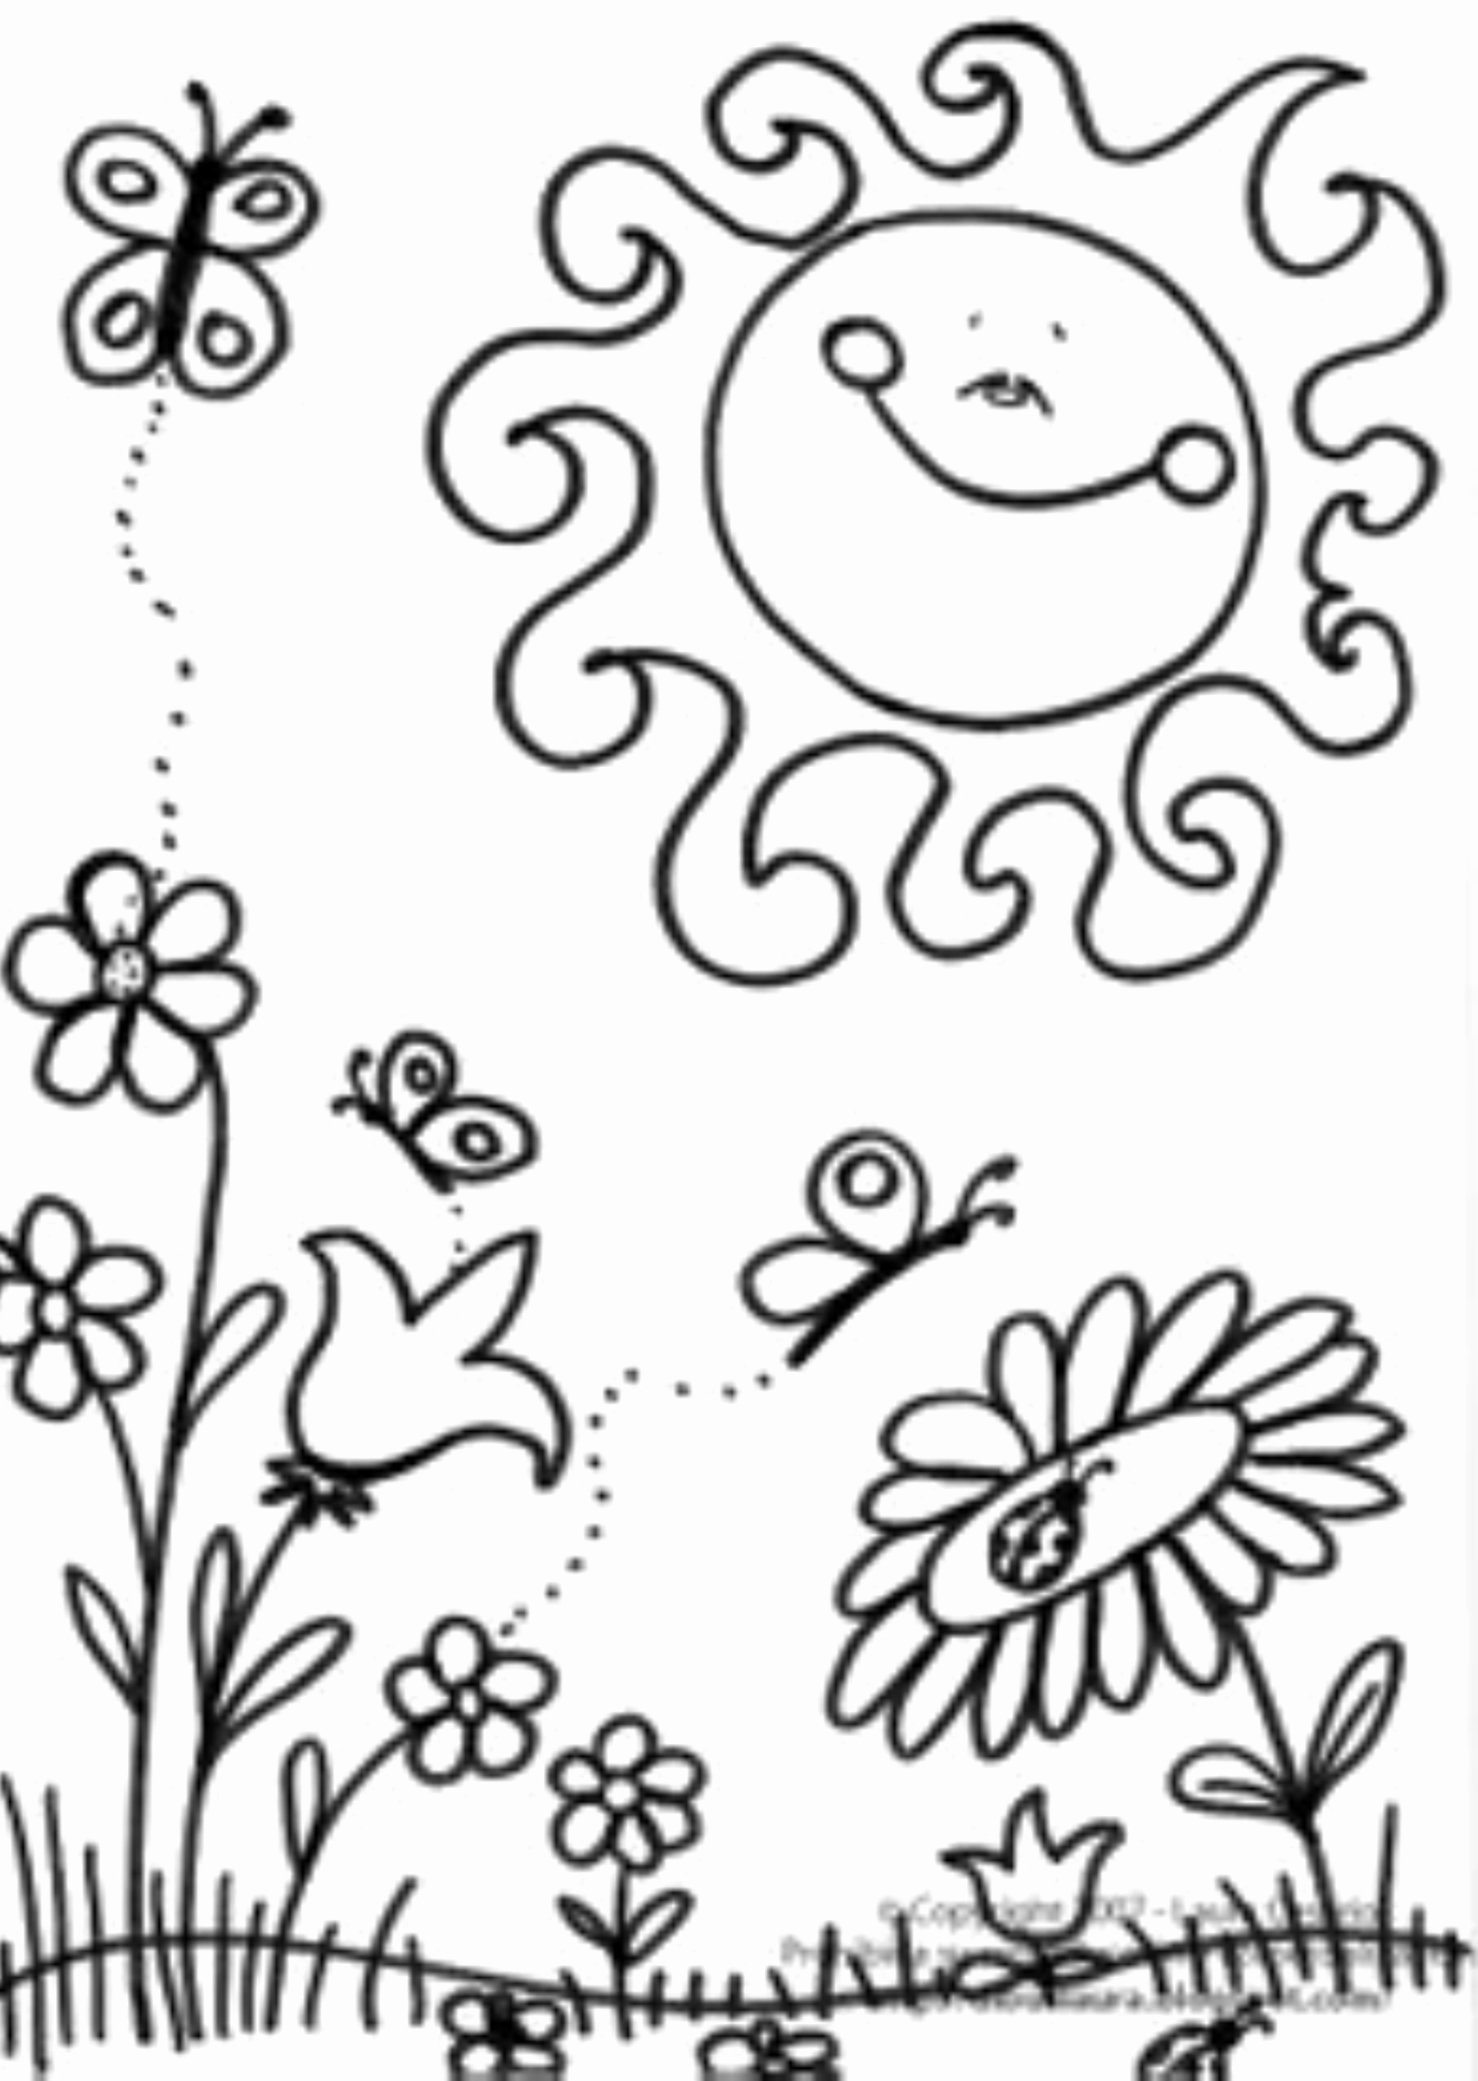 Spring Coloring Worksheets for Preschoolers Inspirational Spring Coloring Pages Printablee Sheet